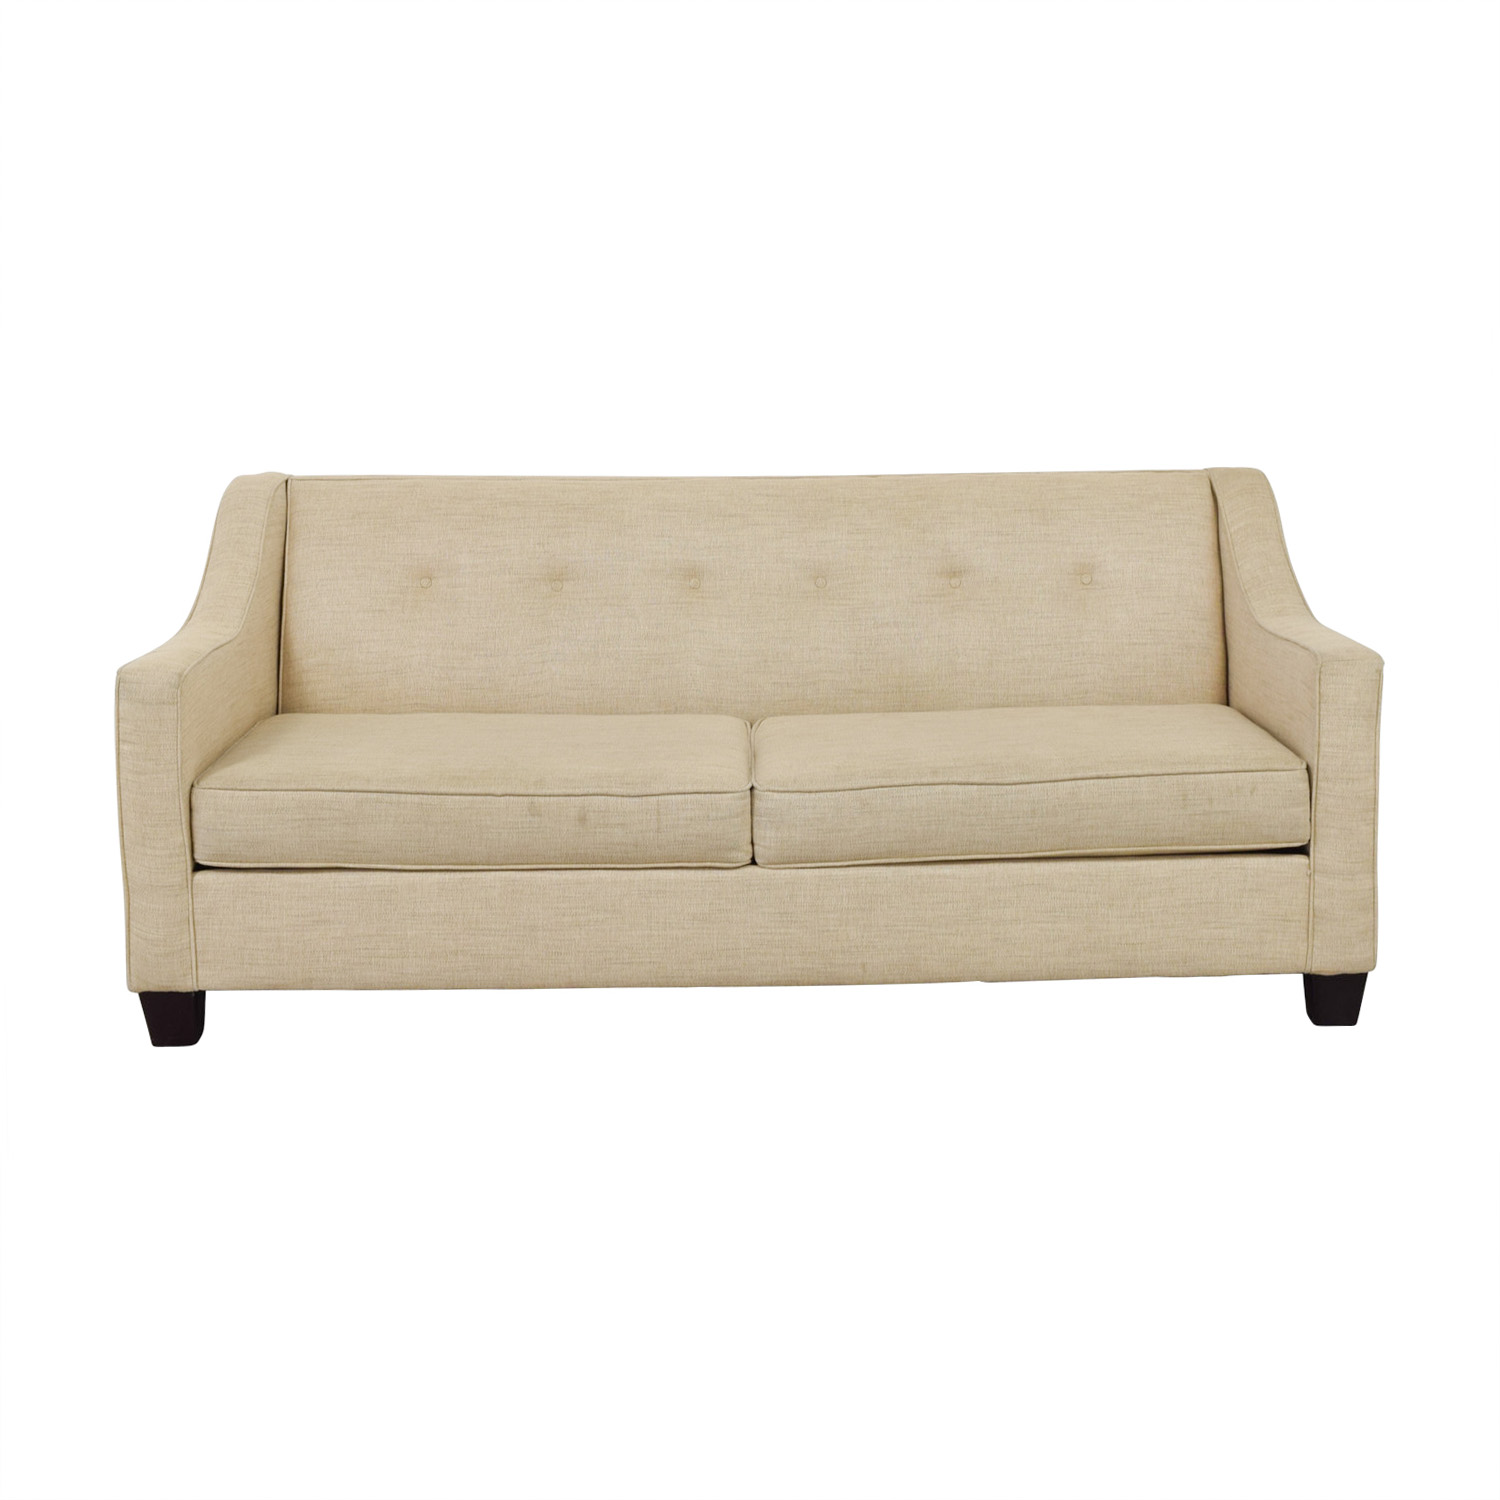 shop May Furniture Tan Tufted Two-Cushion Couch May Furniture Sofas